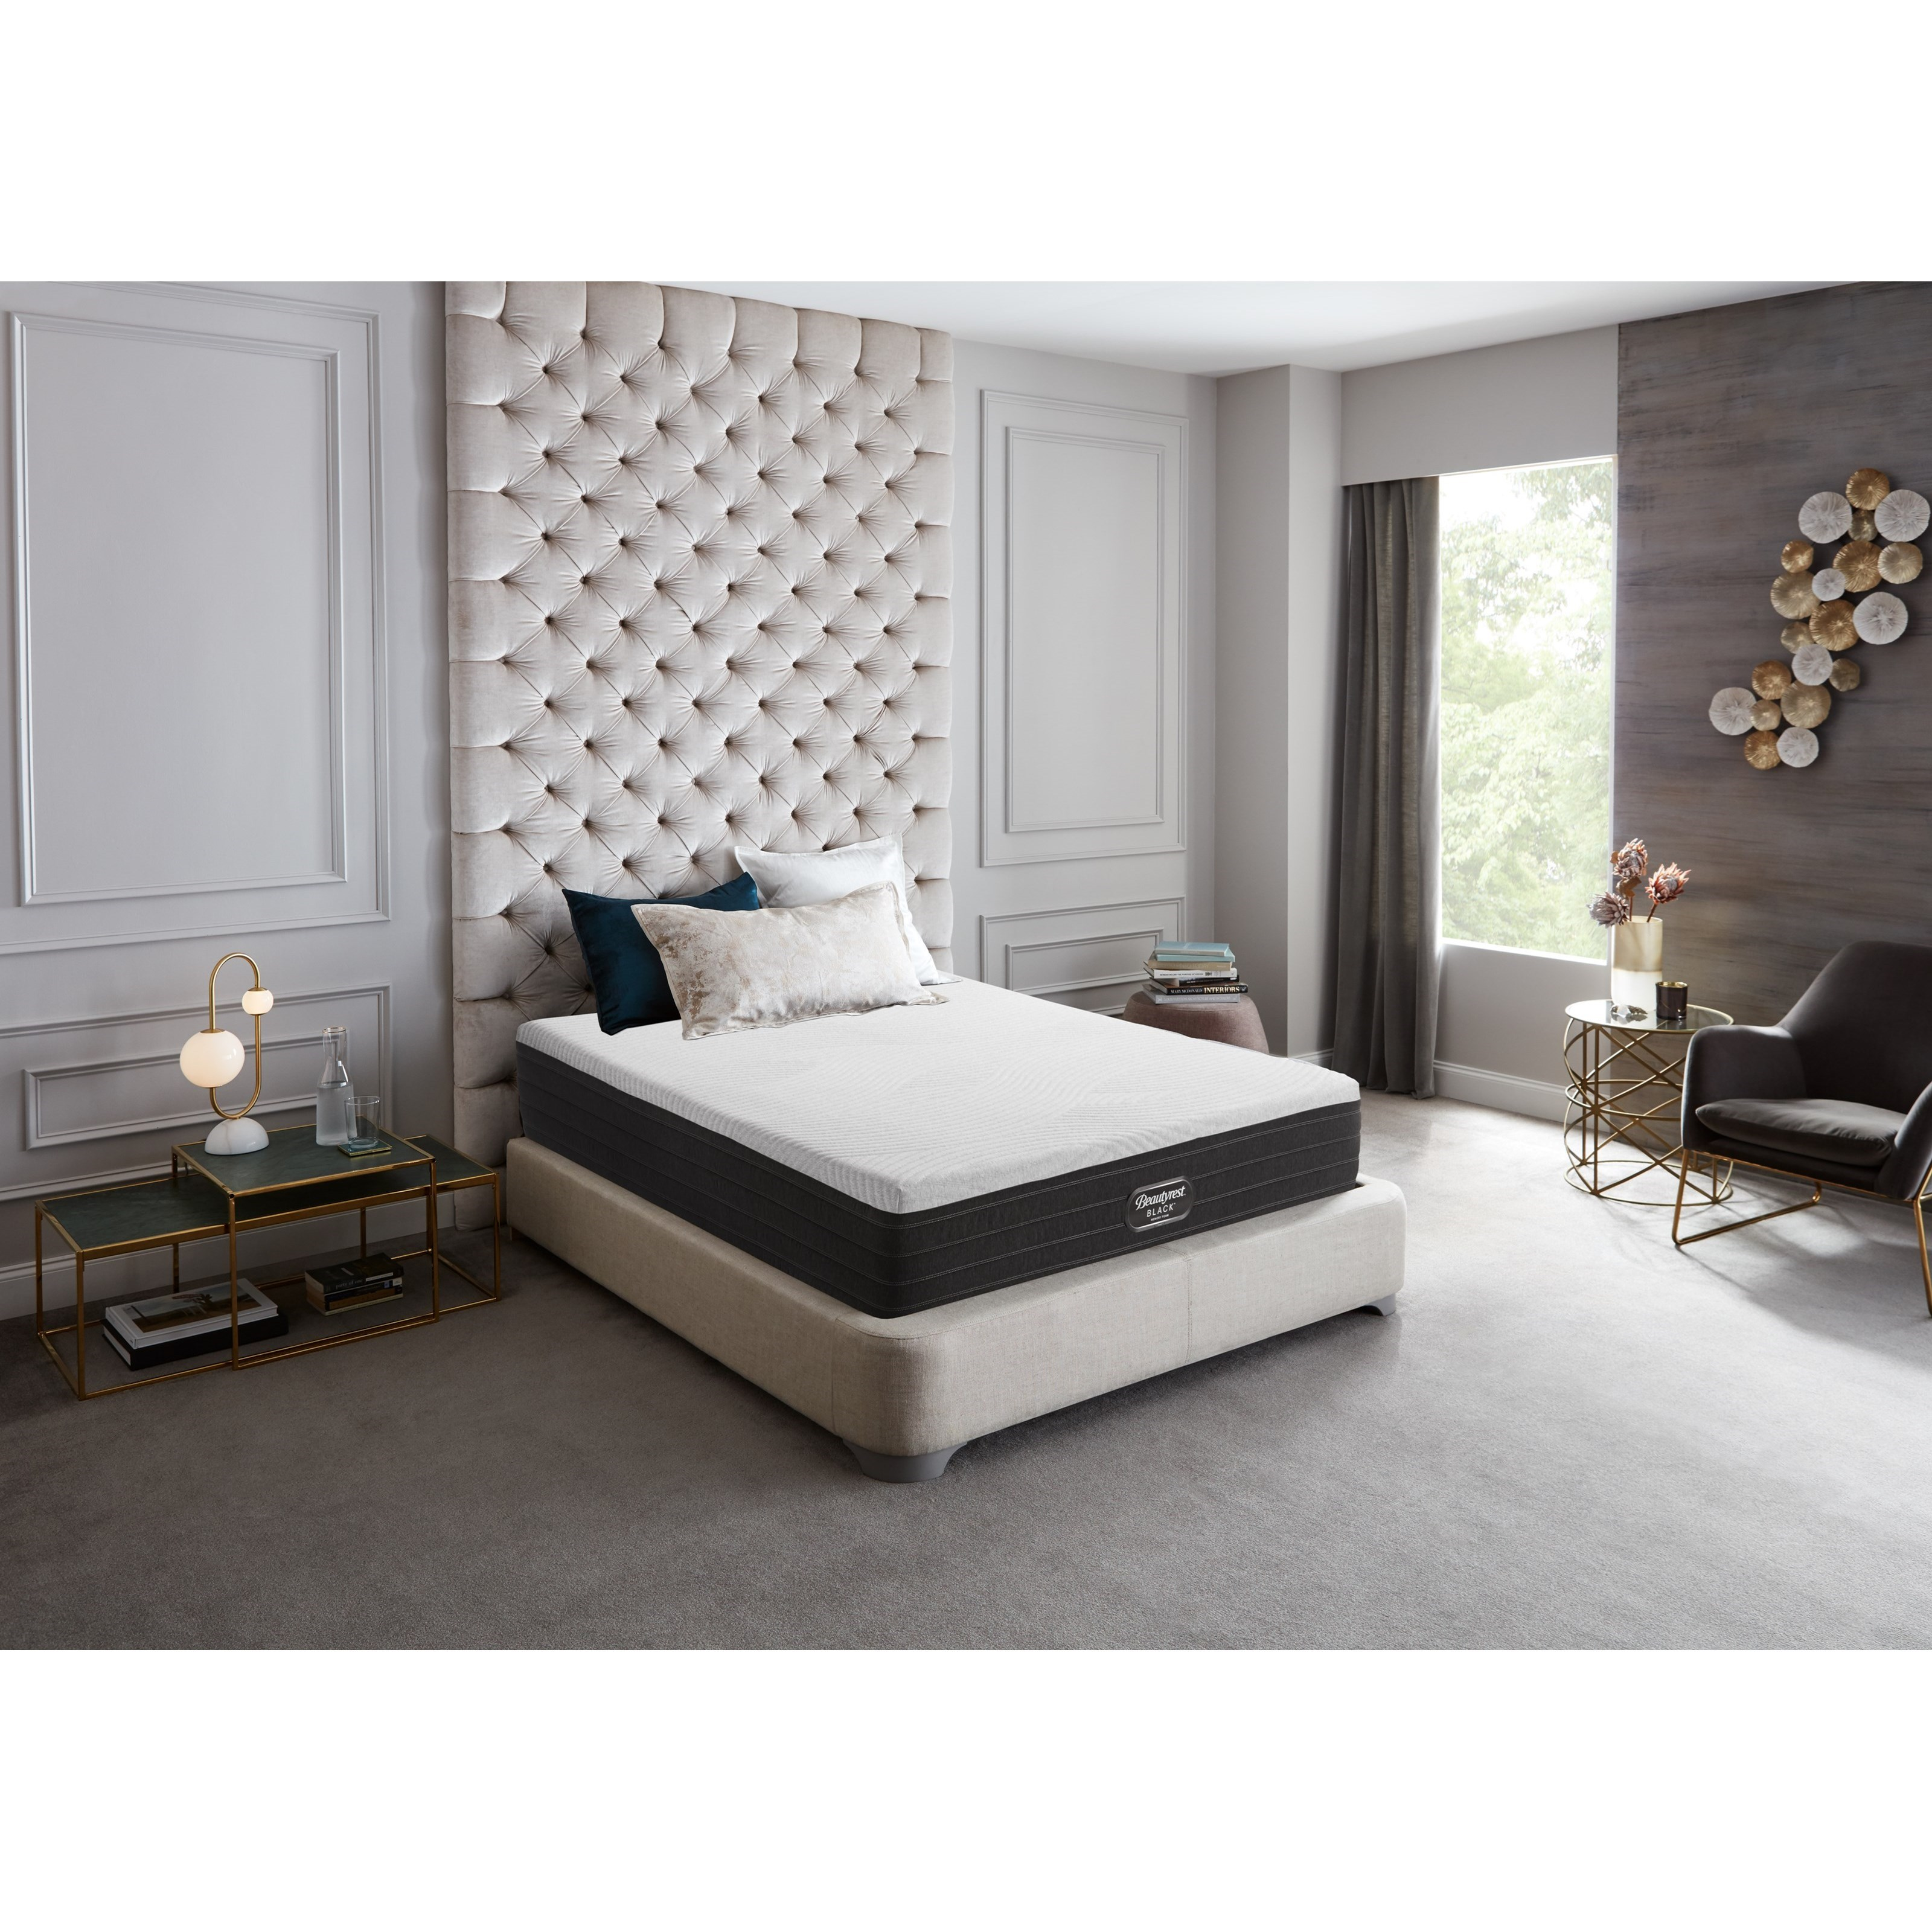 """Grand Firm Queen 11"""" Firm Low Profile Set by Beautyrest Canada at Bennett's Furniture and Mattresses"""